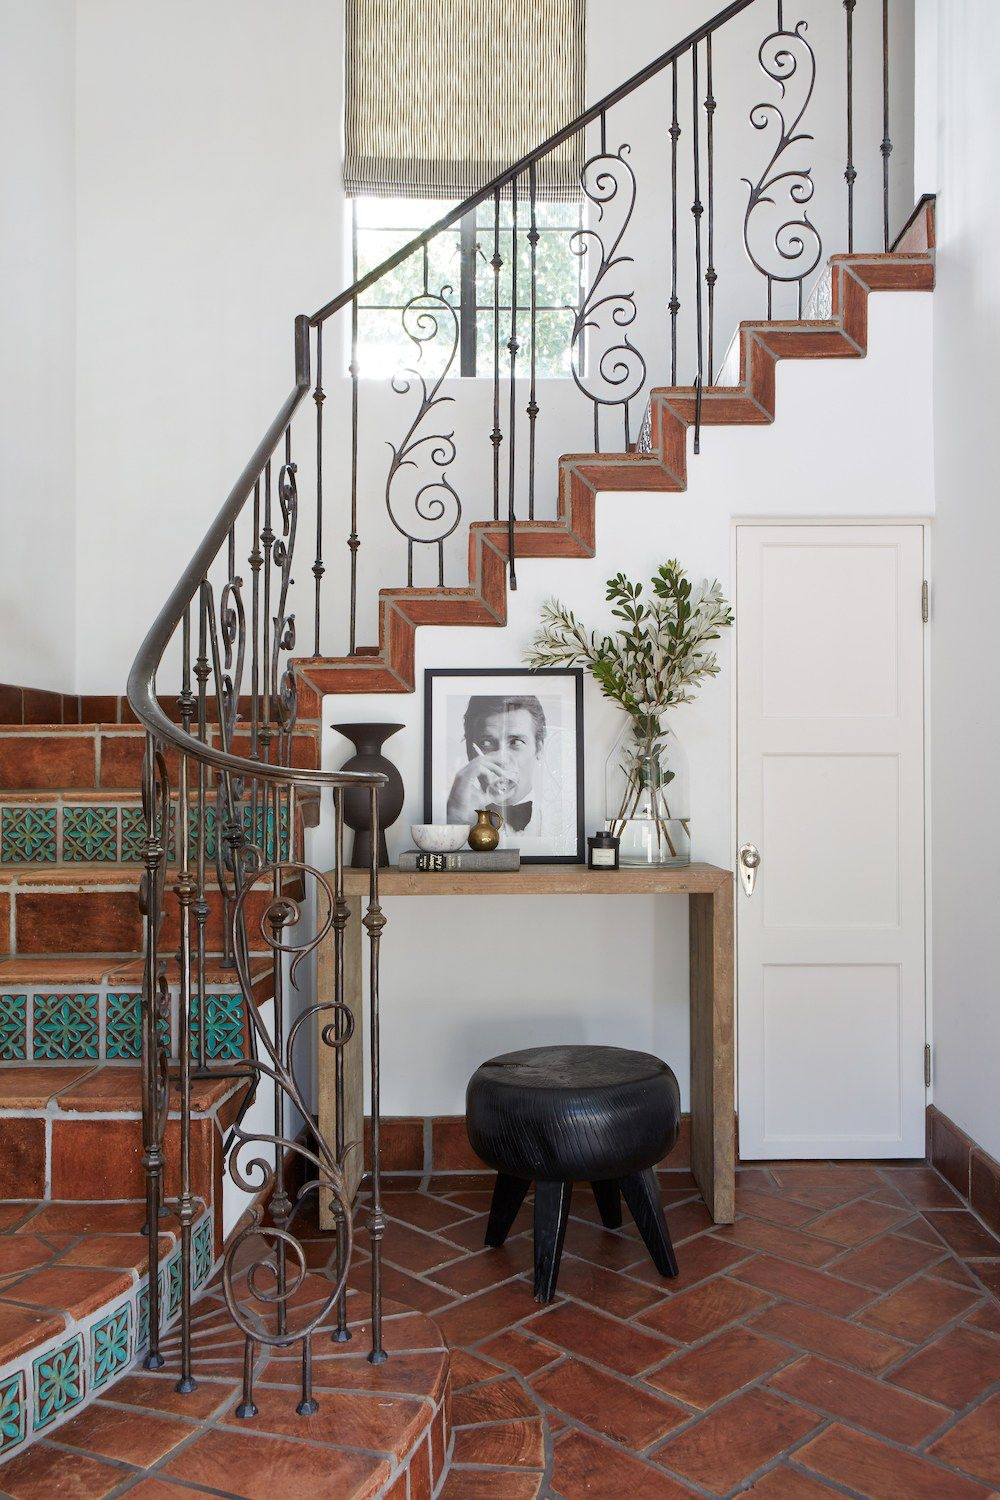 25 Unique Stair Designs Beautiful Stair Ideas For Your House | Black Granite Staircase Designs | India Staircase | Contemporary | Italian Marble Step | Double Staircase | Wood Girl